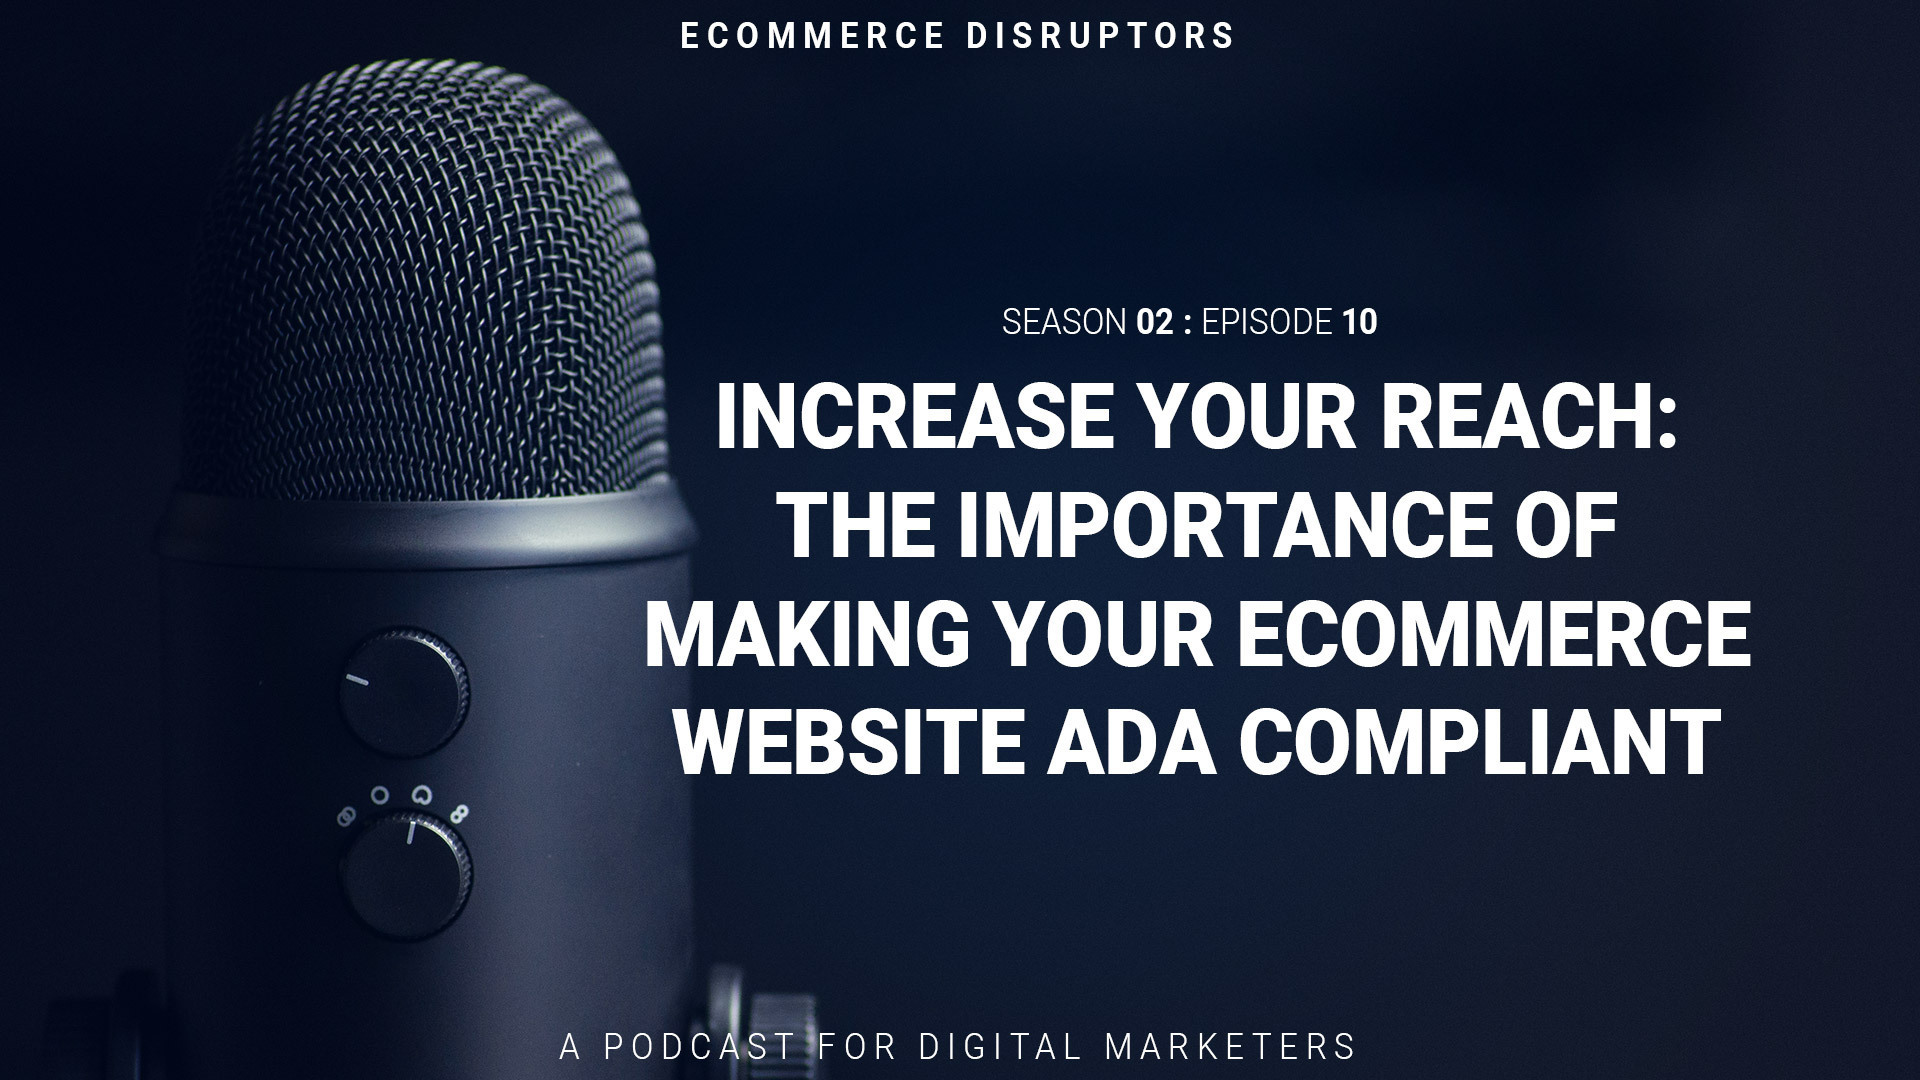 Increase Your Reach: The importance of making your ecommerce website ADA compliant